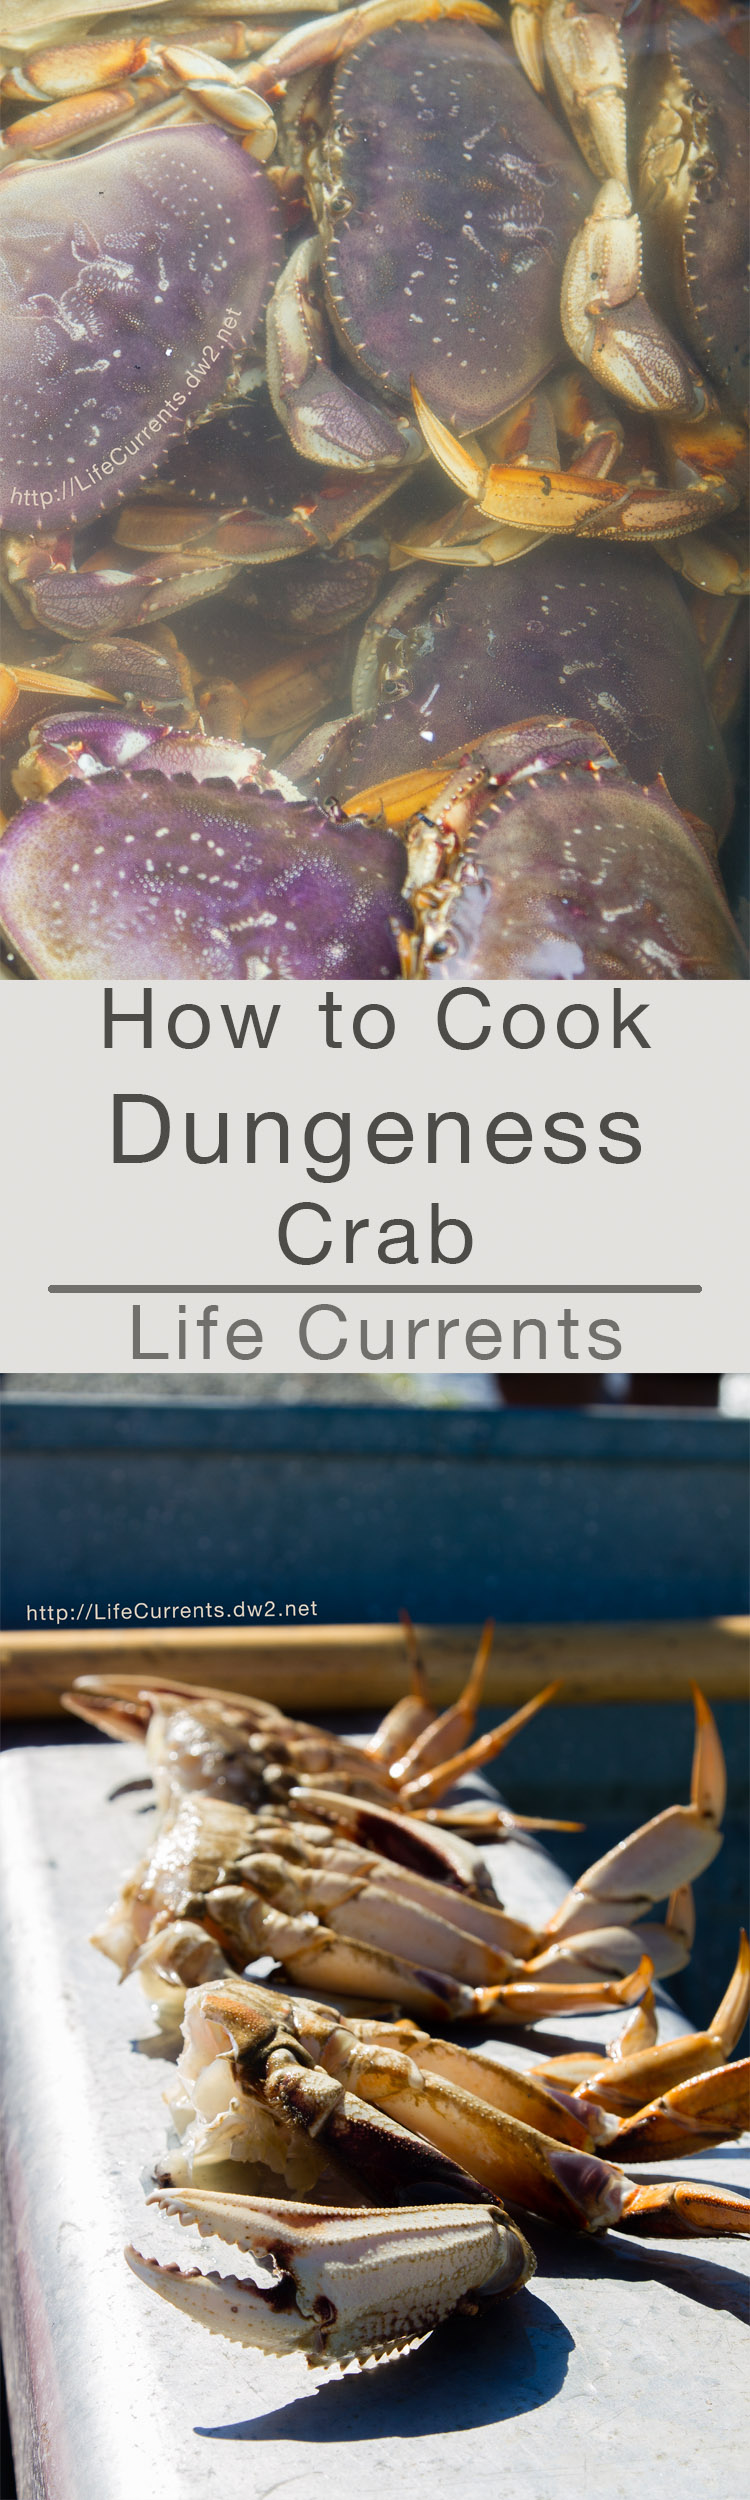 How to Cook Dungeness Crab - Since I've learned quite a bit about Dungeness Crab, I thought I'd share how to cook it.